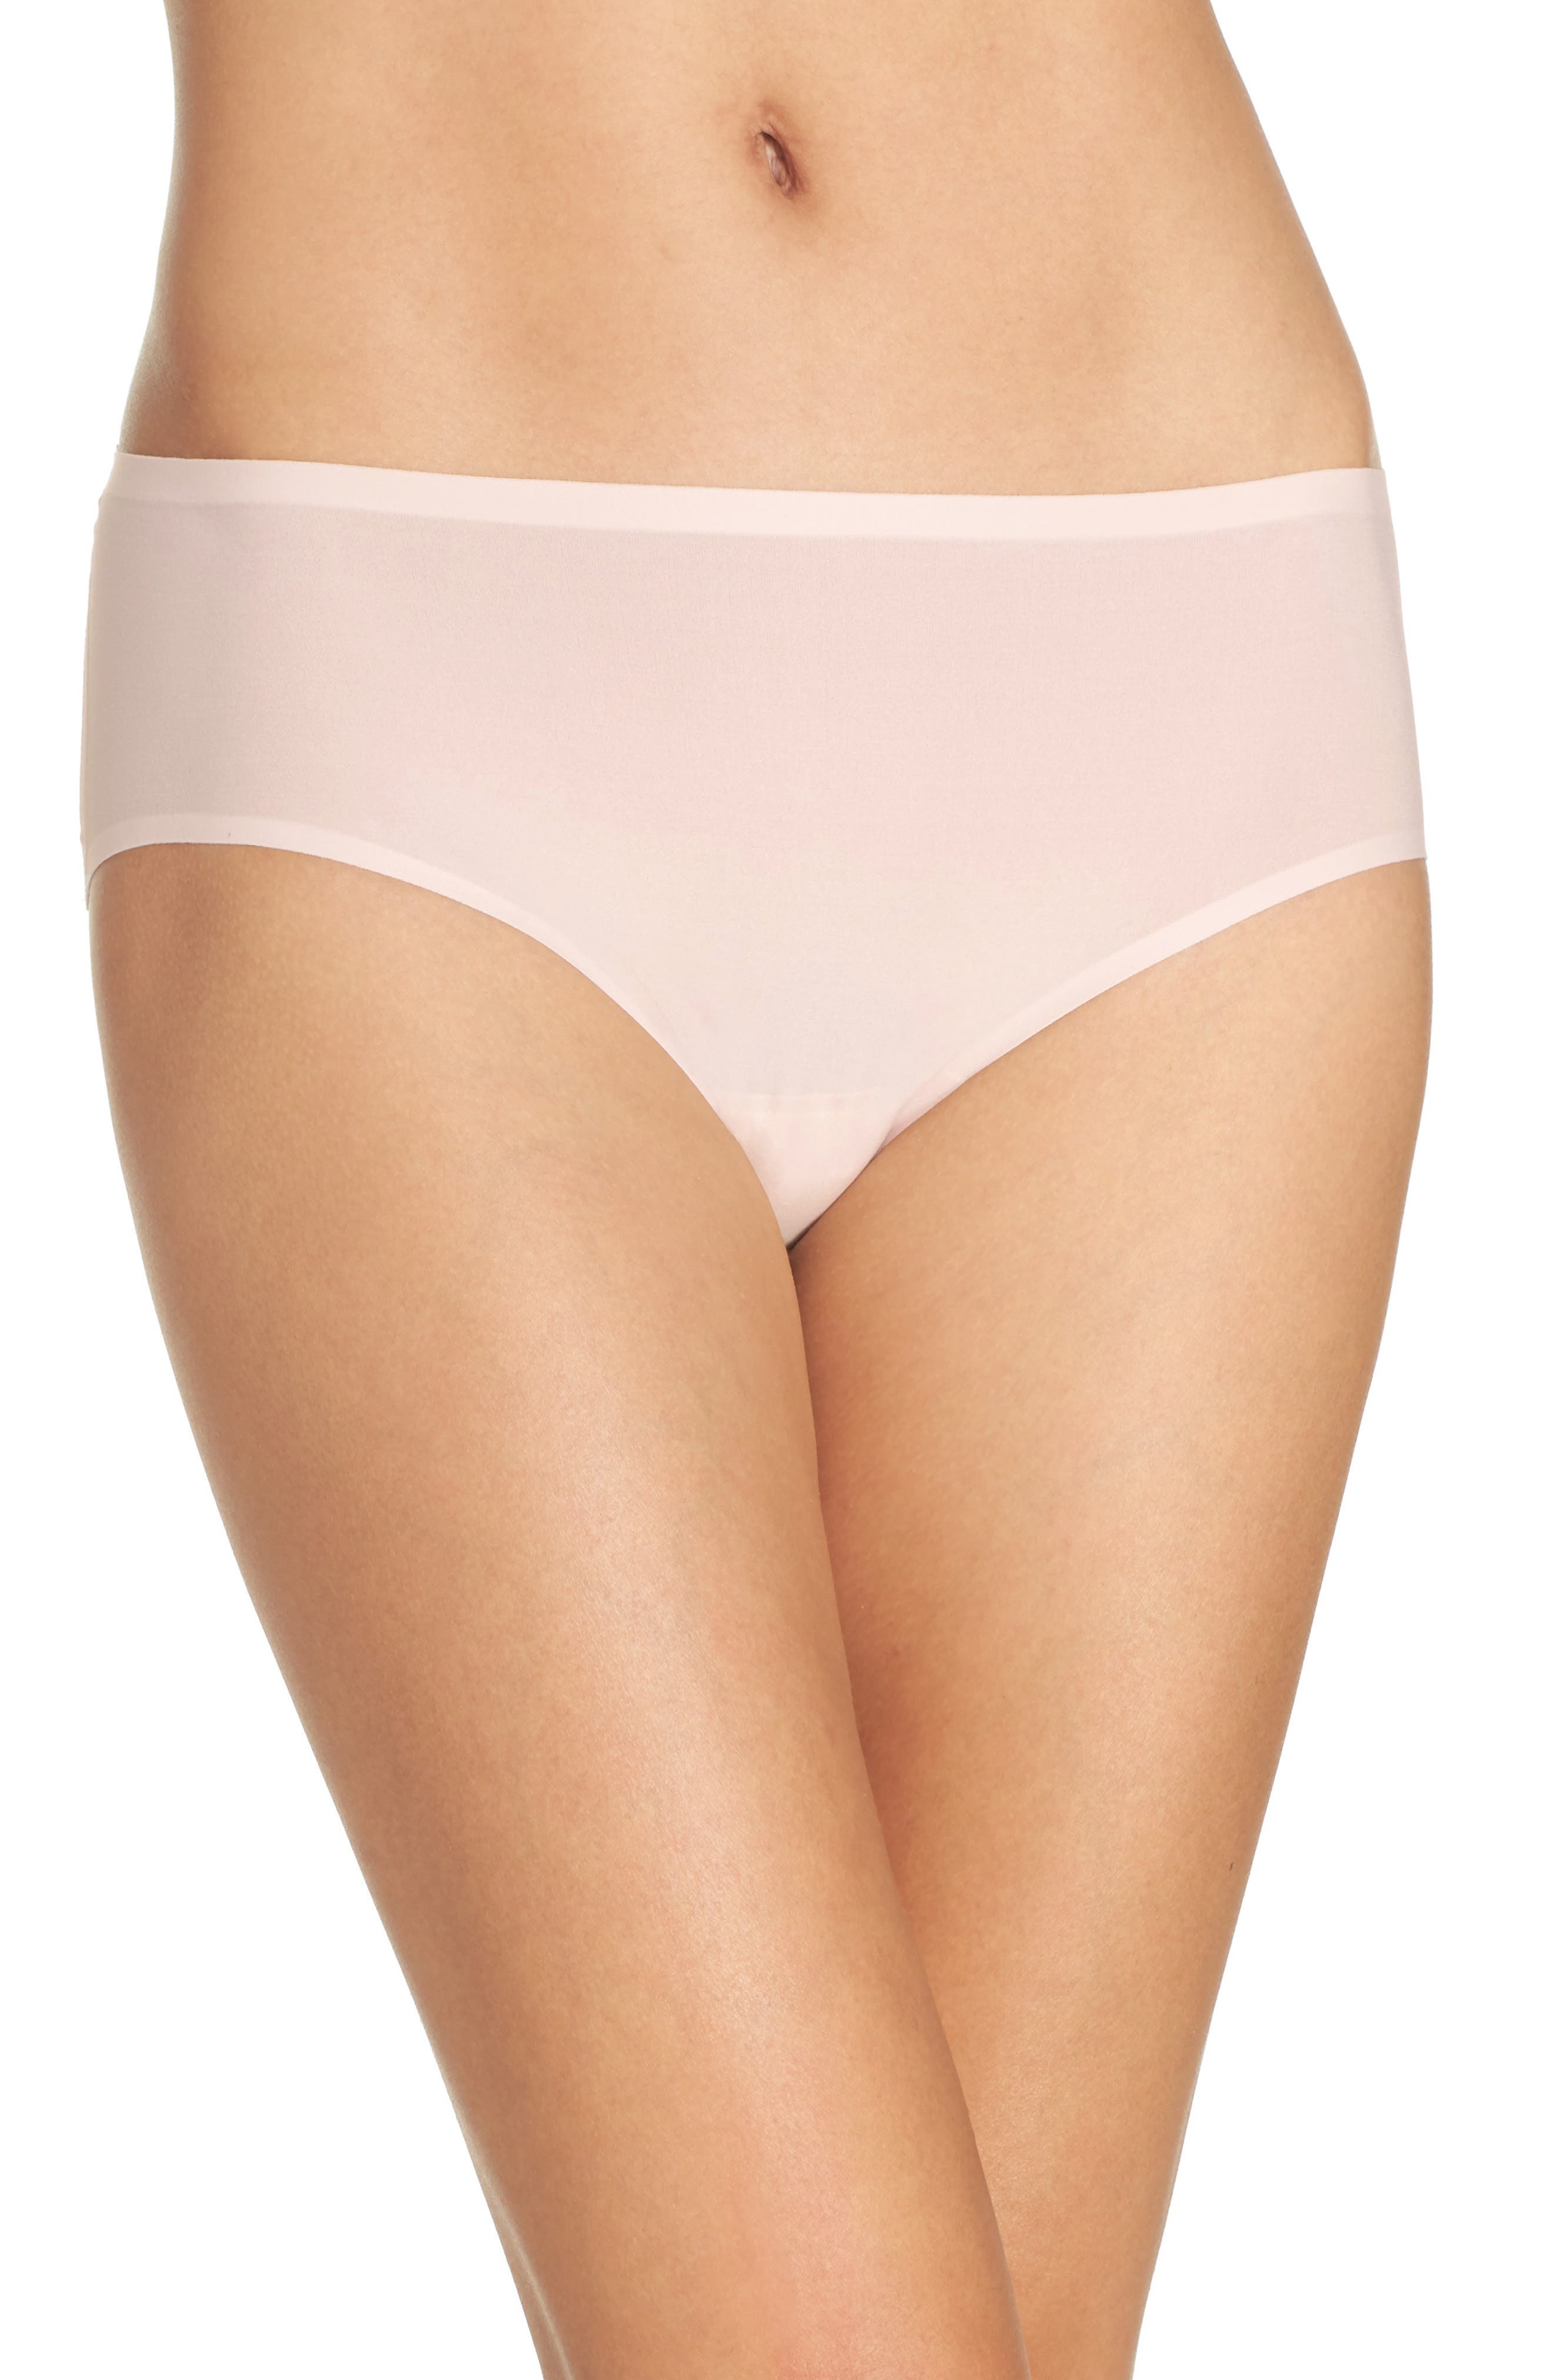 Main Image - Chantelle Intimates Soft Stretch Seamless Hipster Panties (3 for $45)